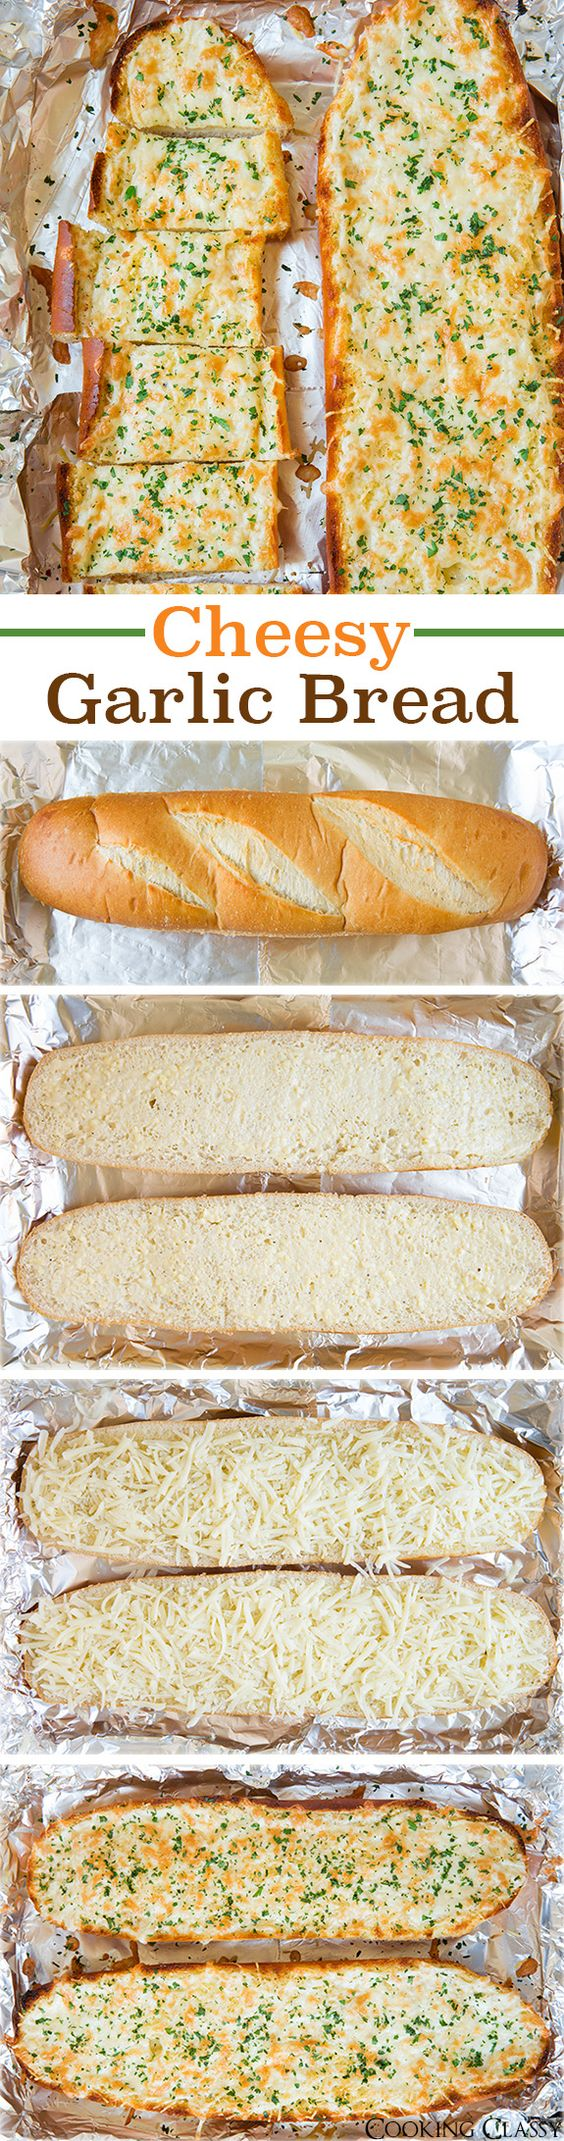 Cheesy Garlic Bread - this bread is AMAZING! I couldn't stop eating it ...